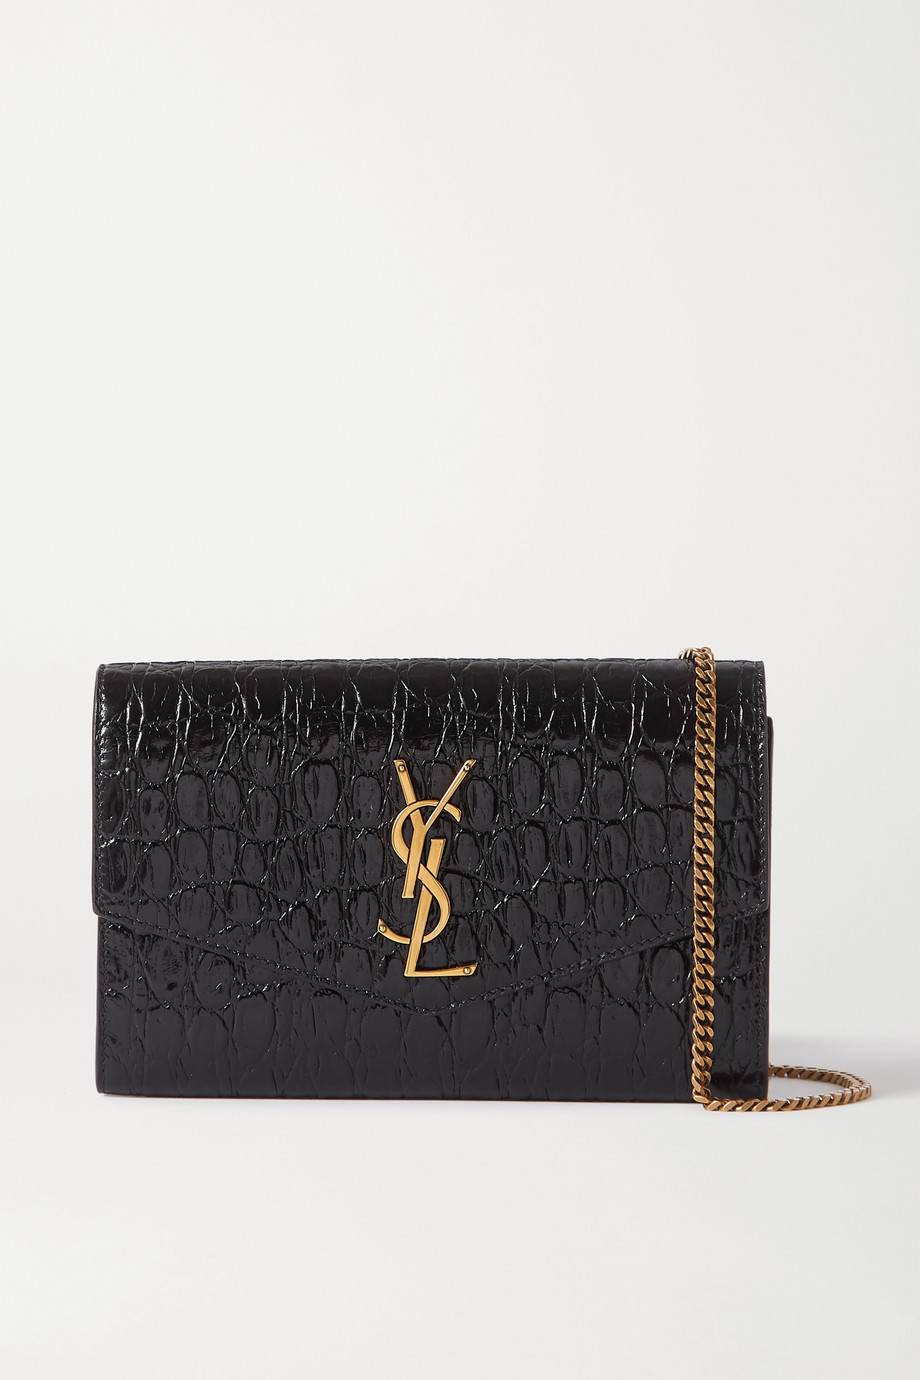 SAINT LAURENT Uptown croc-effect patent-leather shoulder bag